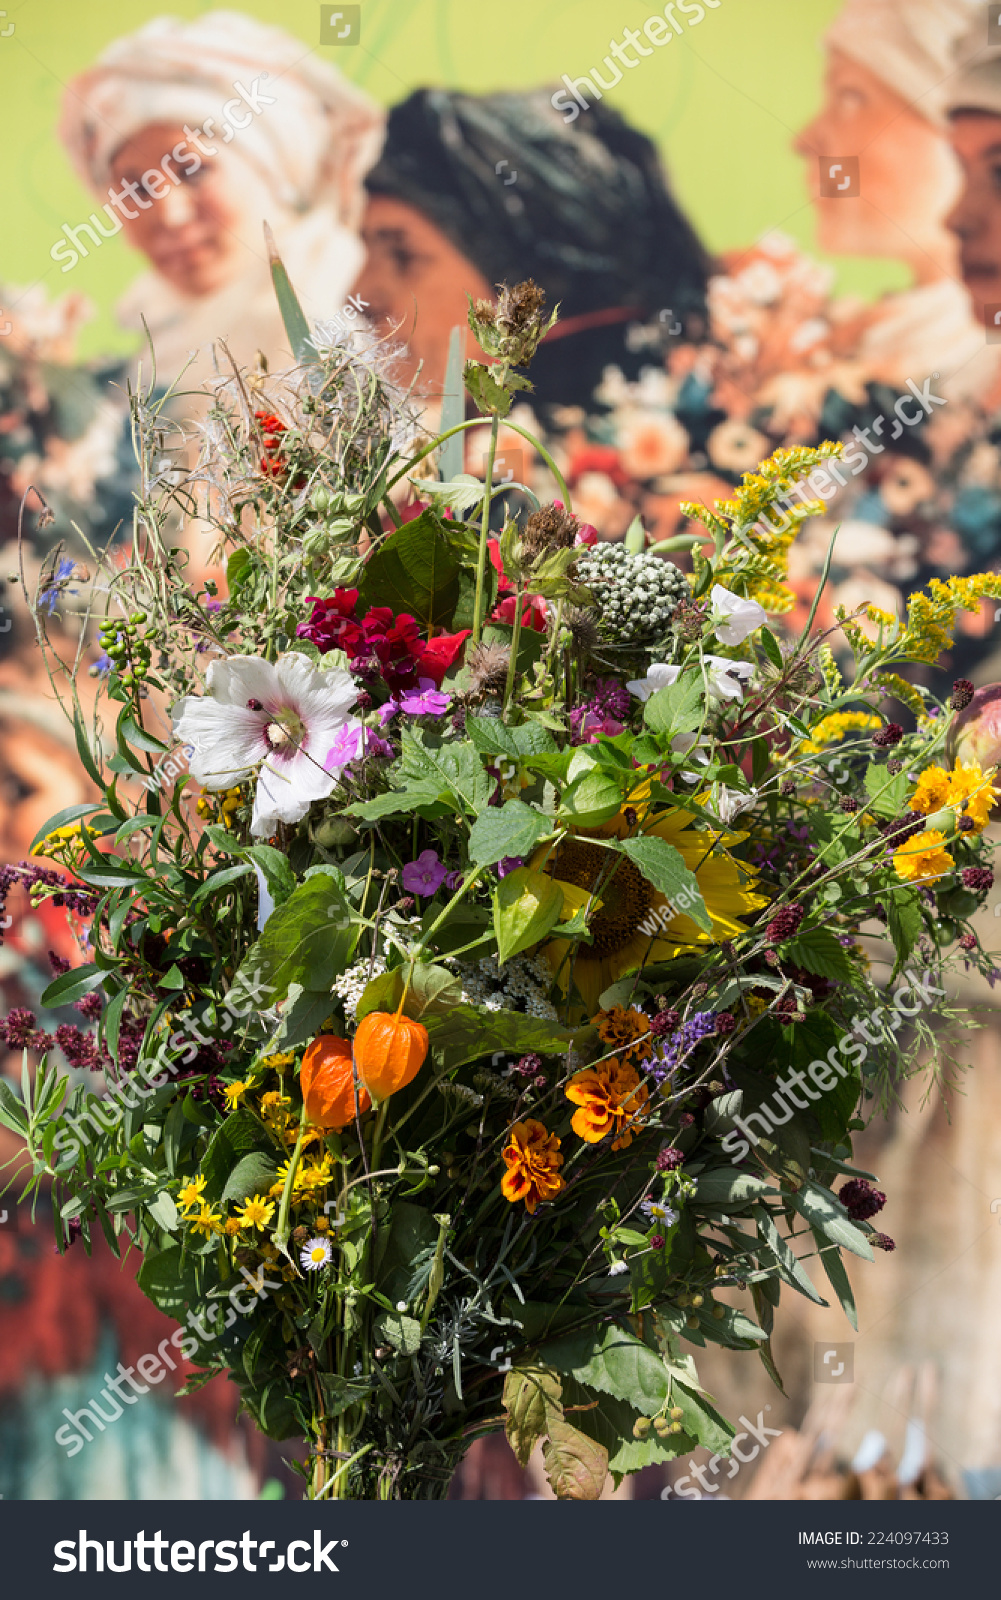 Beautiful Bouquets Flowers Herbs Stock Photo (Safe to Use) 224097433 ...